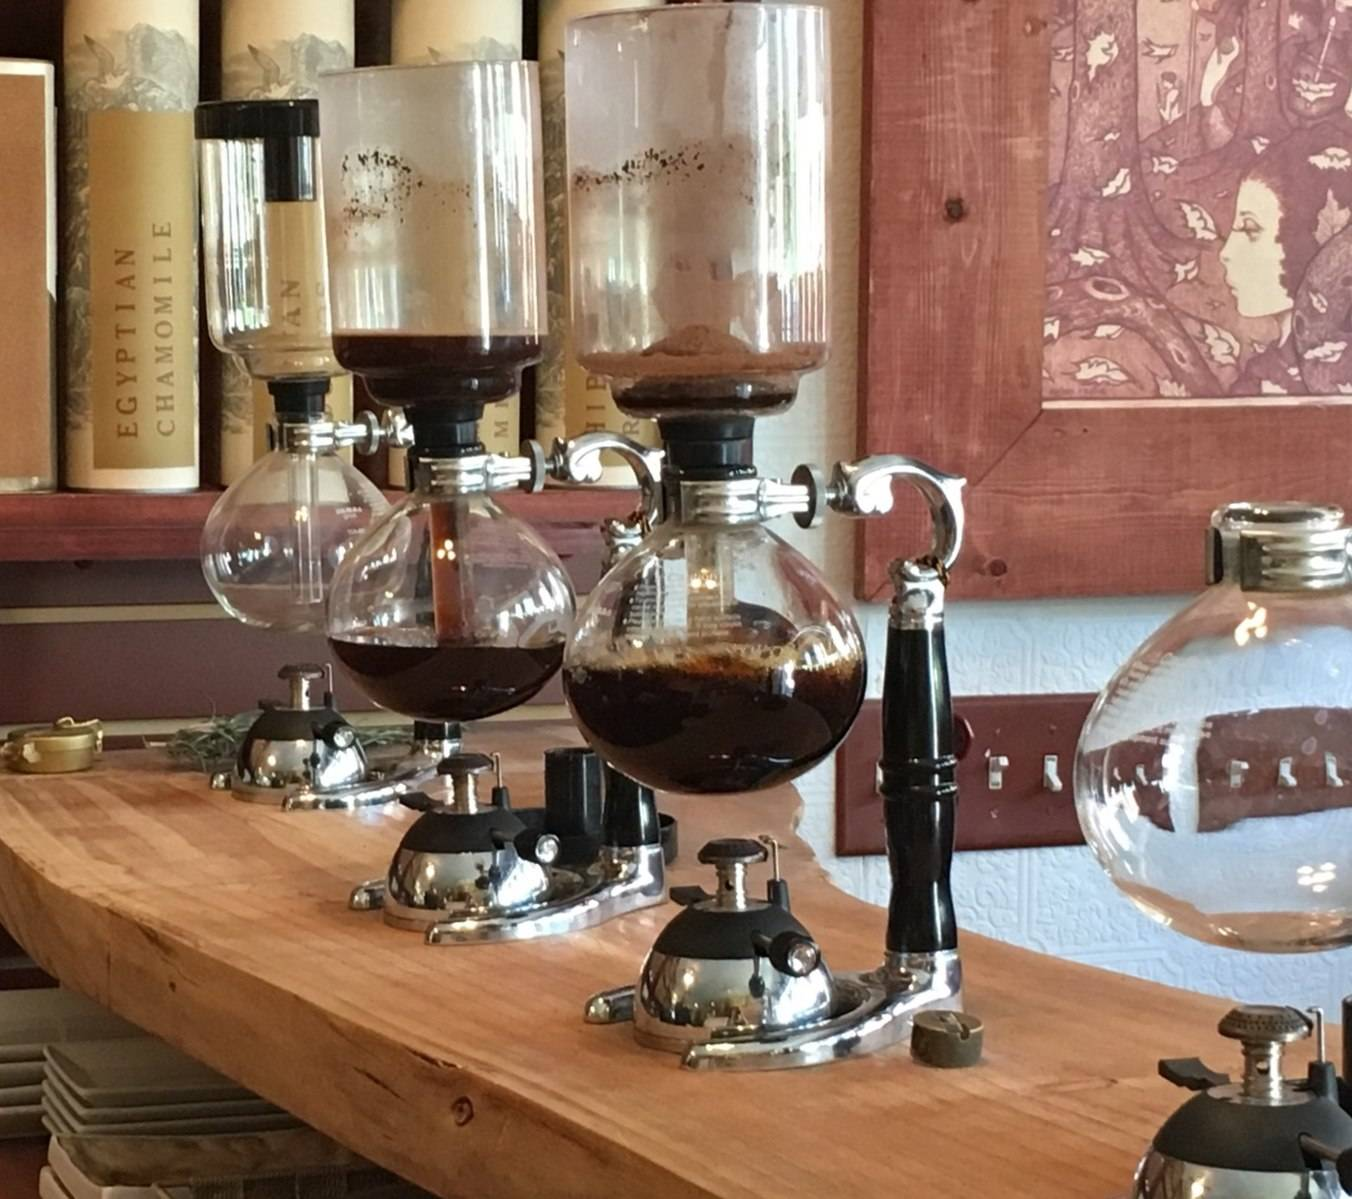 Early 18th century coffee brewing devices